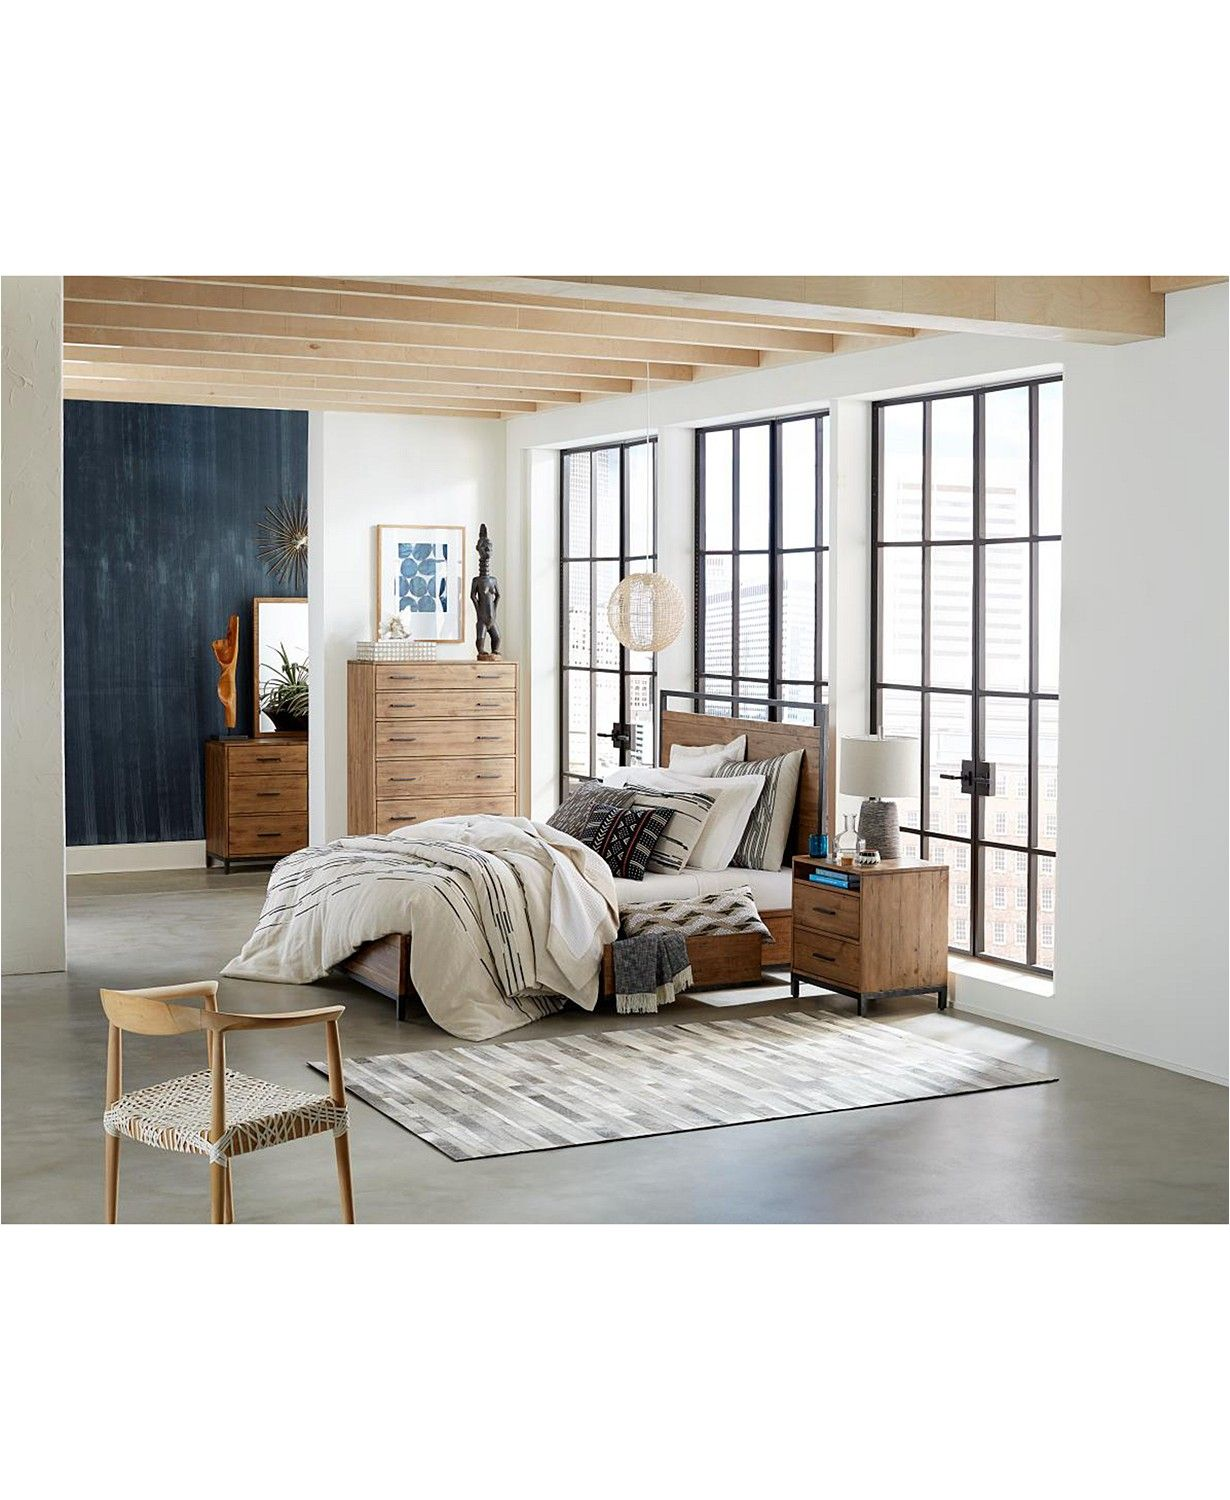 Furniture Gatlin Storage Platform Bedroom Furniture Collection Created For Macy S Reviews Furniture Macy S In 2020 Furniture Bedroom Collections Furniture Platform Bedroom